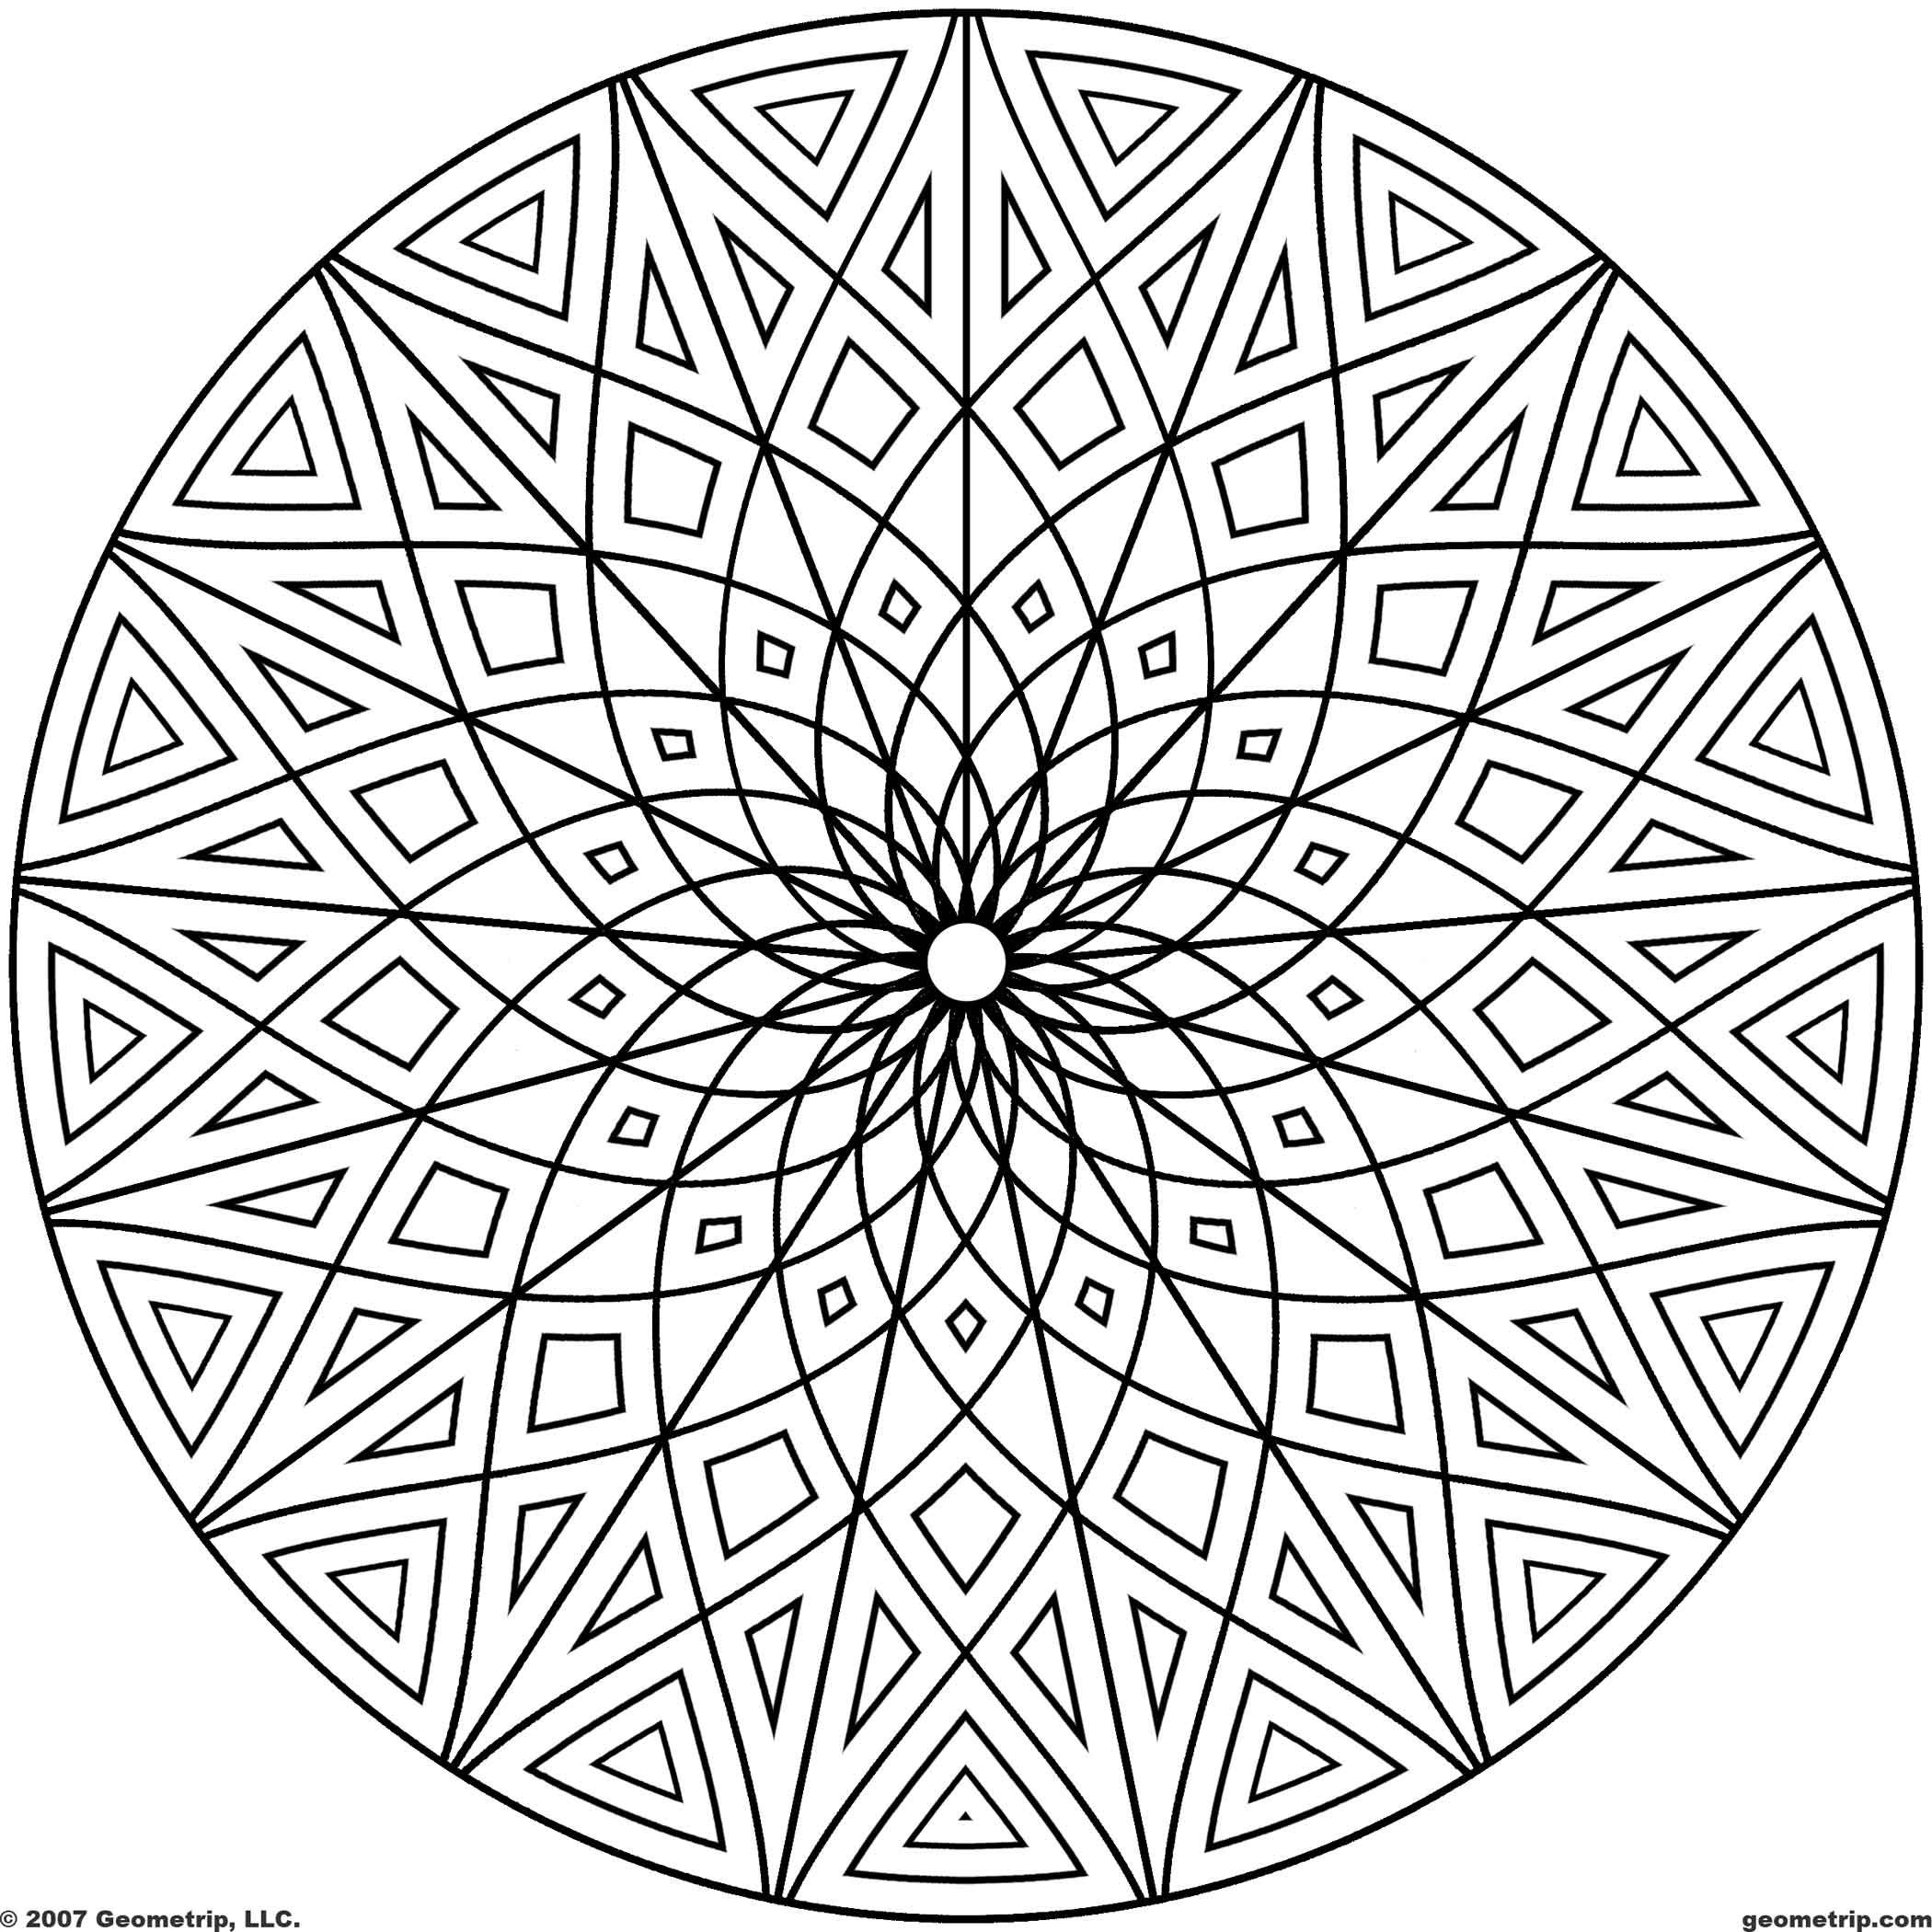 Pin by komoco on esmecat pinterest coloring pages color and design